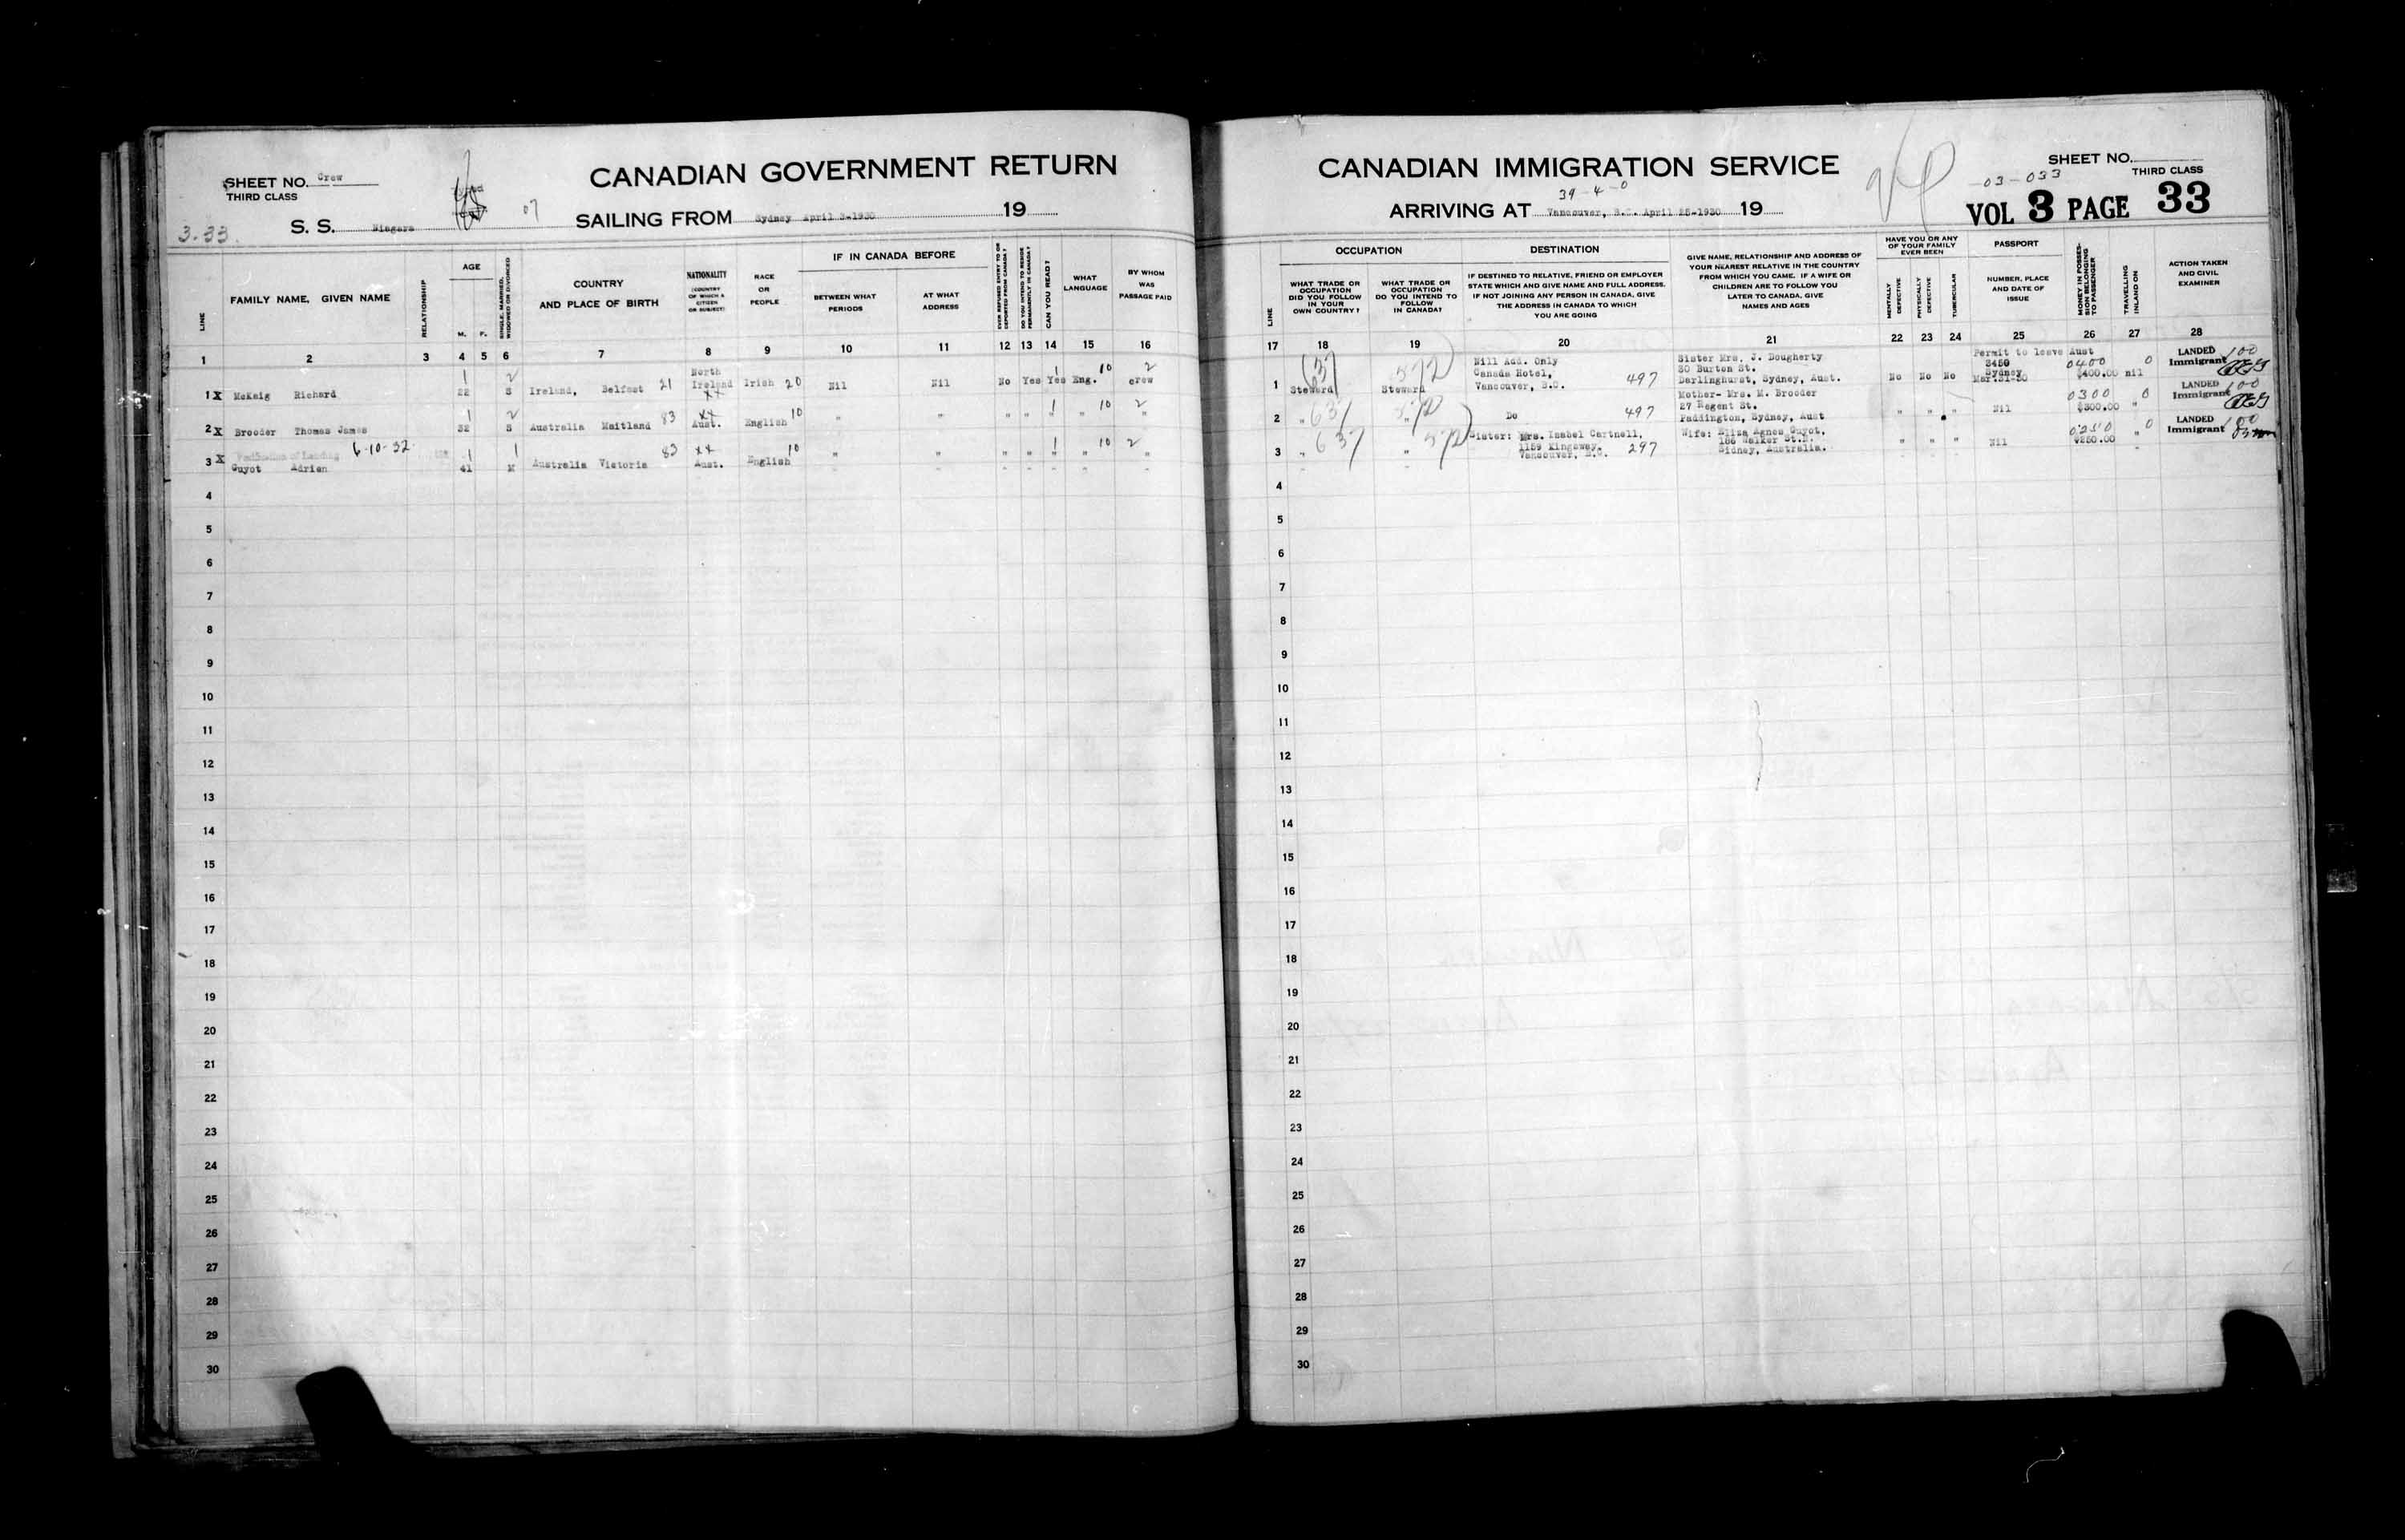 Title: Passenger Lists: Vancouver and Victoria (1925-1935) - Mikan Number: 161347 - Microform: t-14896